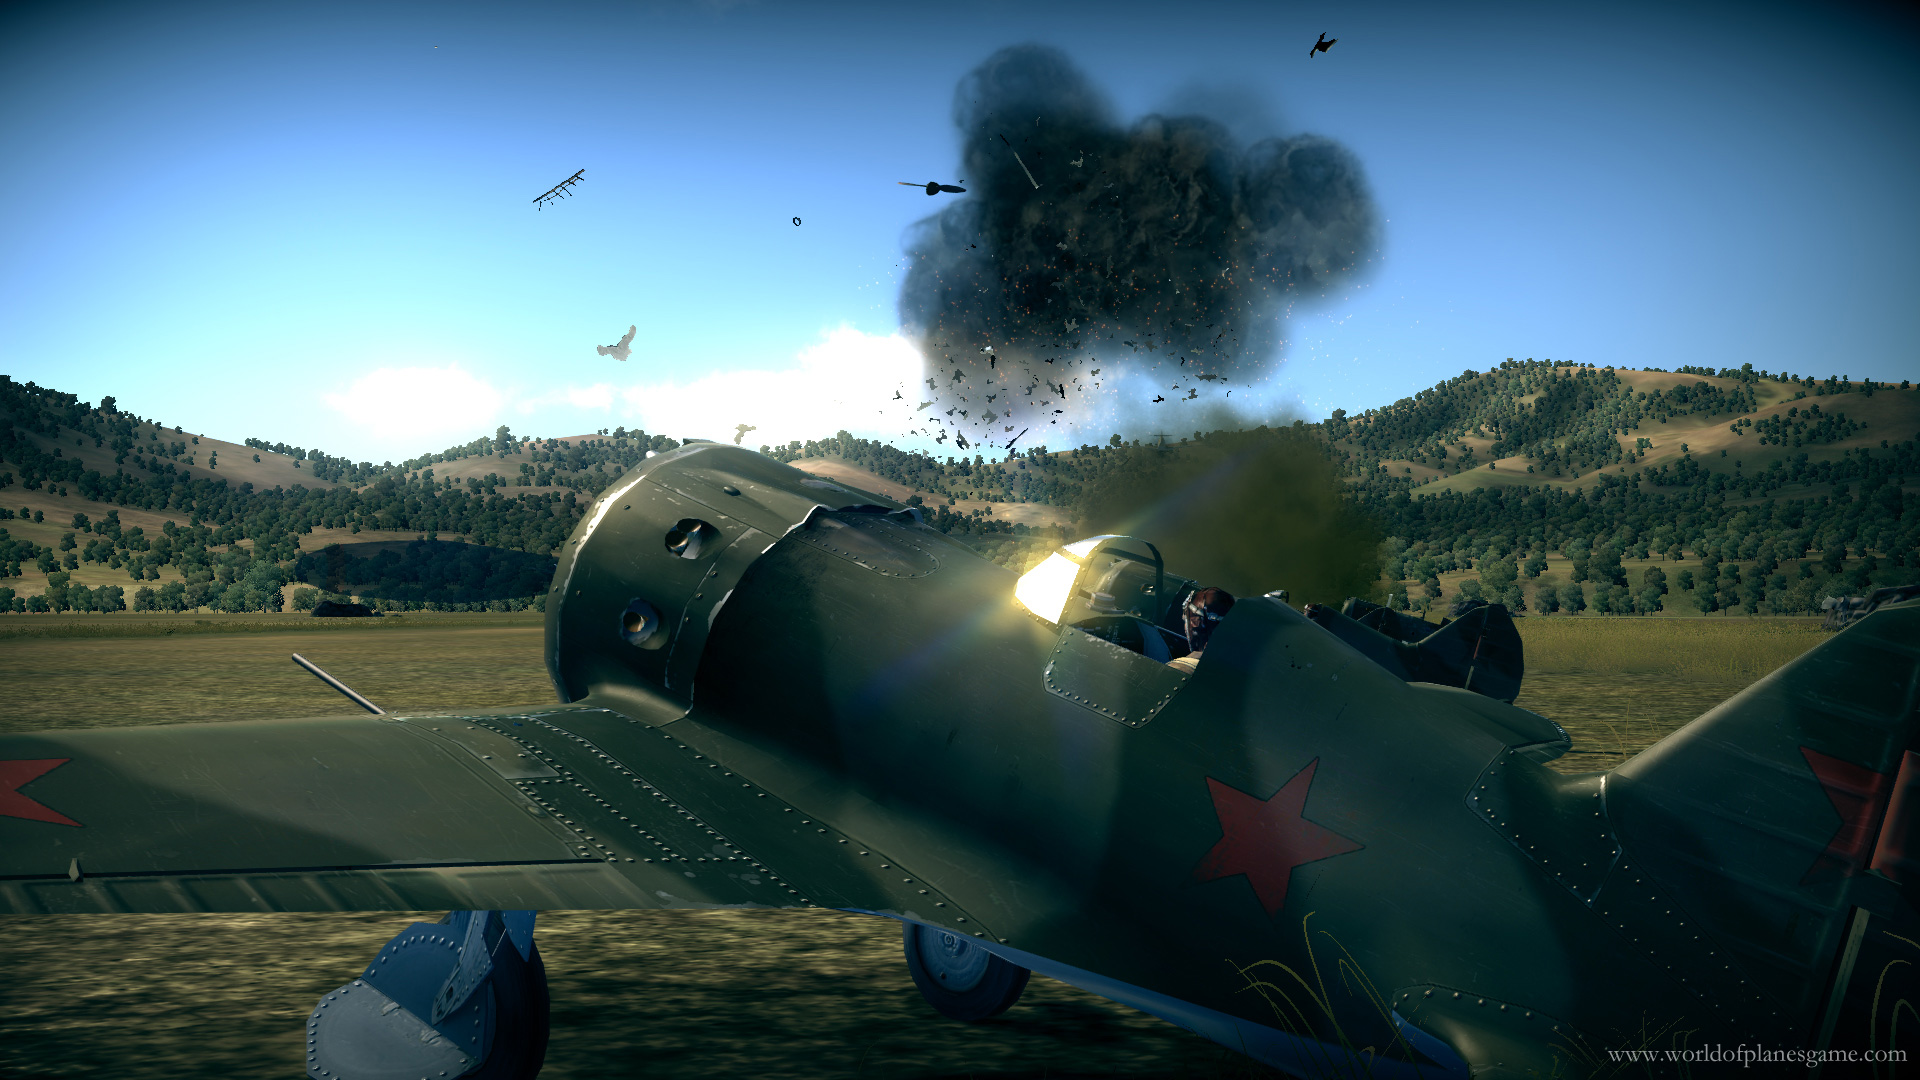 La guerra por dominar el cielo en World of Planes [Trailer]